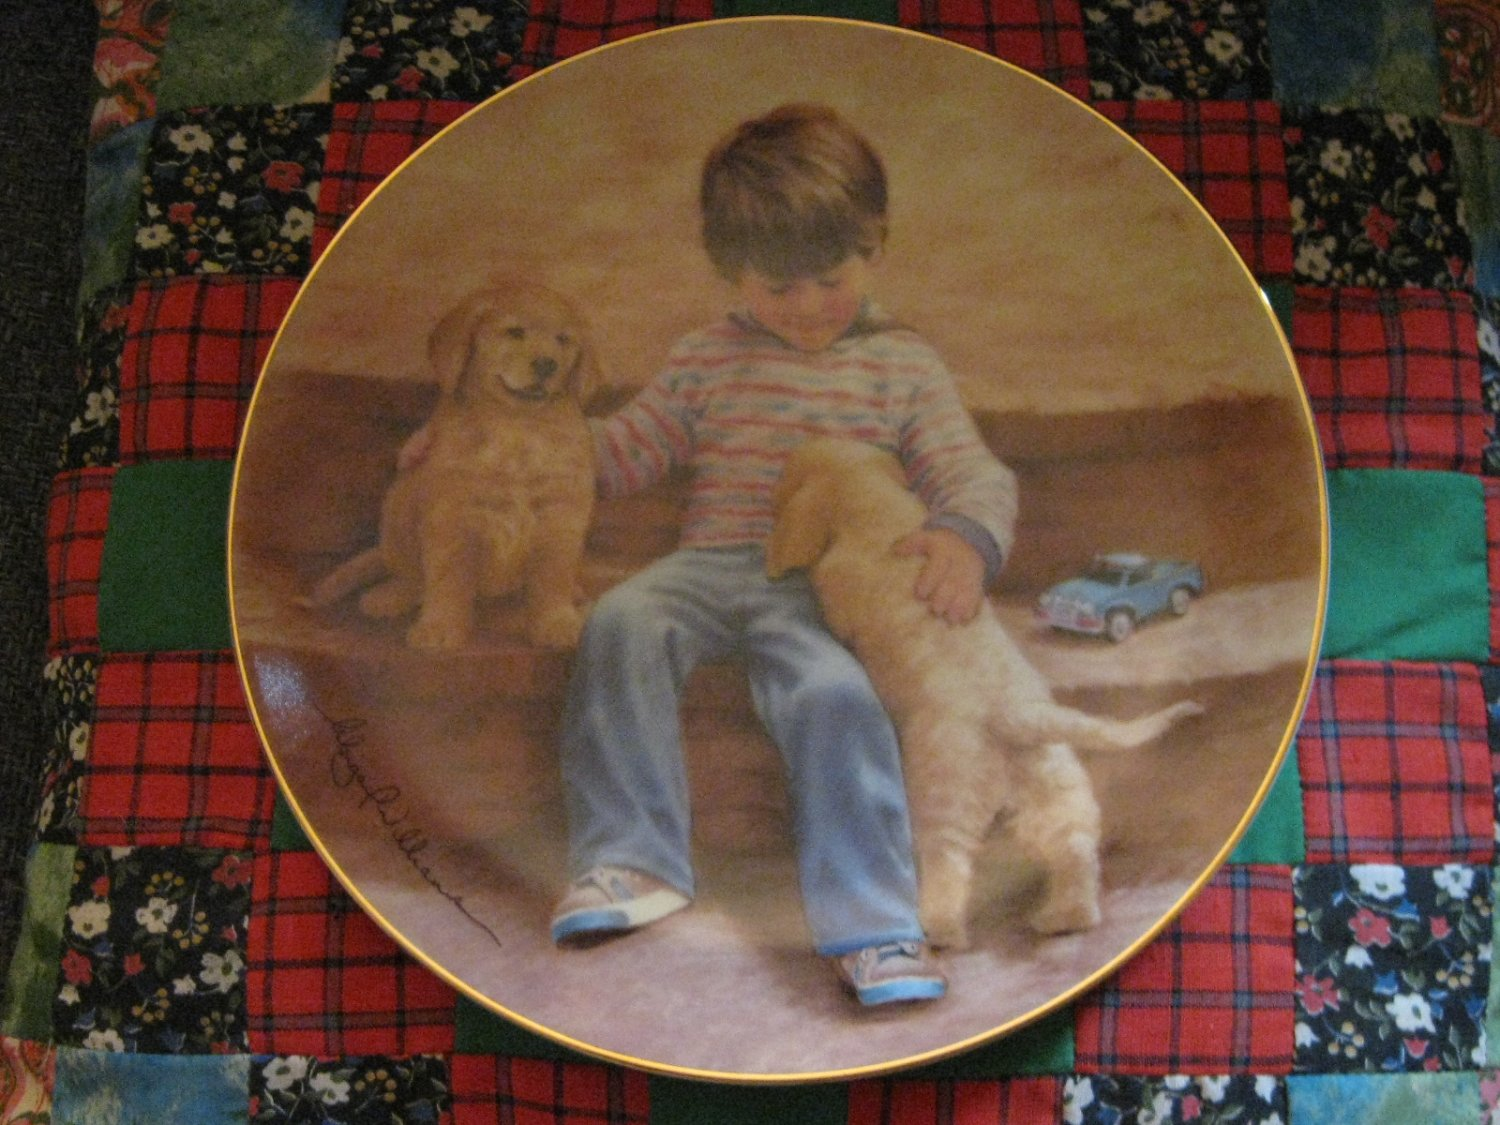 Best Buddies Collector Plate From The Magic Of Childhood Series Abbie Williams Hamilton 1985